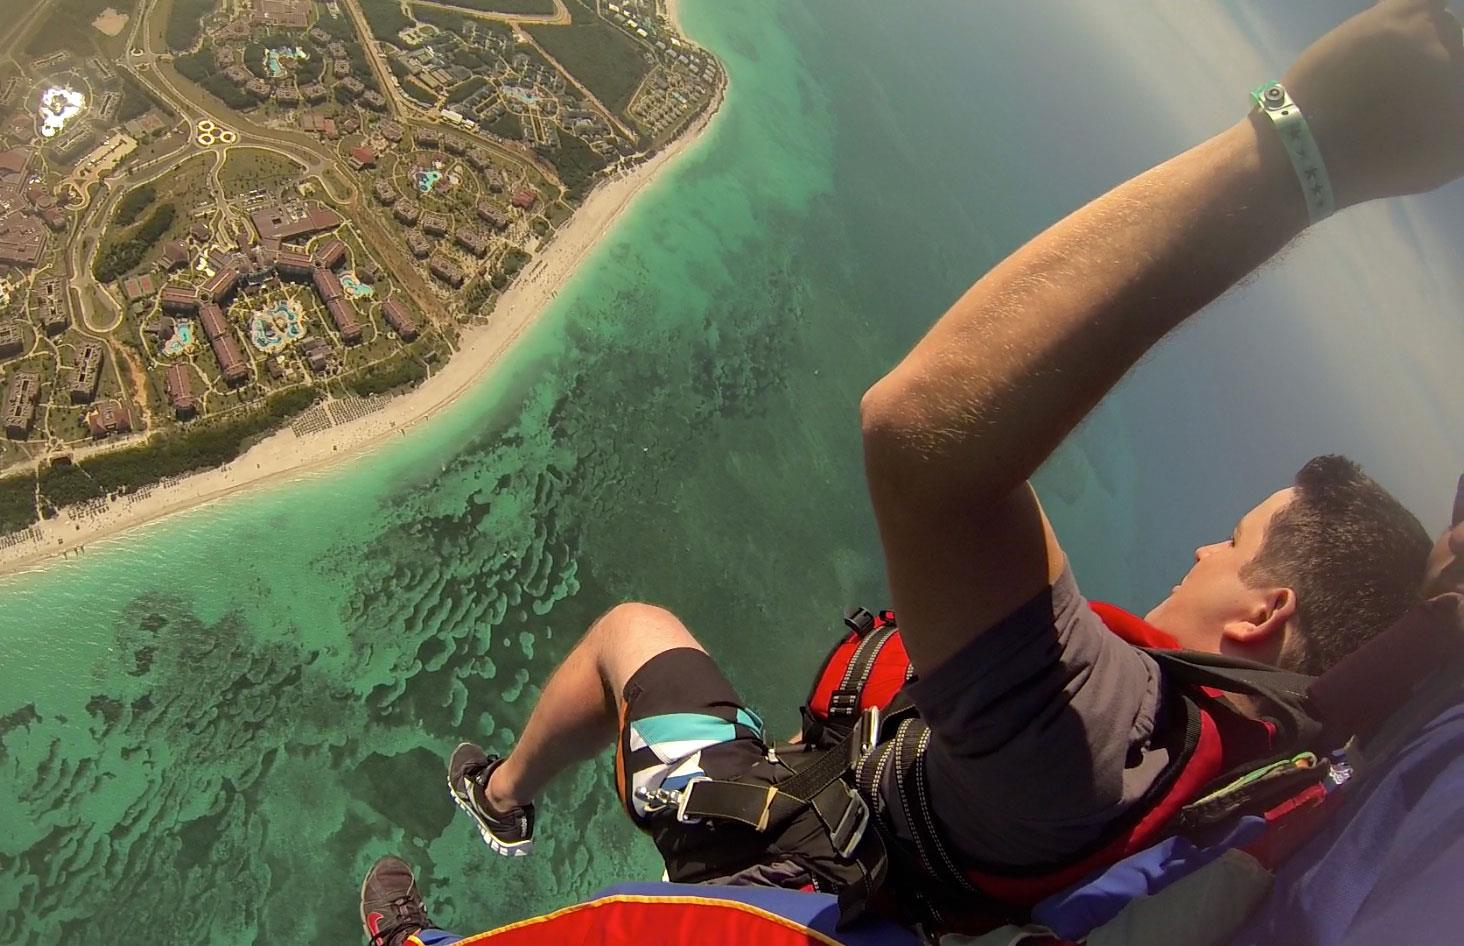 Extreme Skydiving in Varadero, Cuba